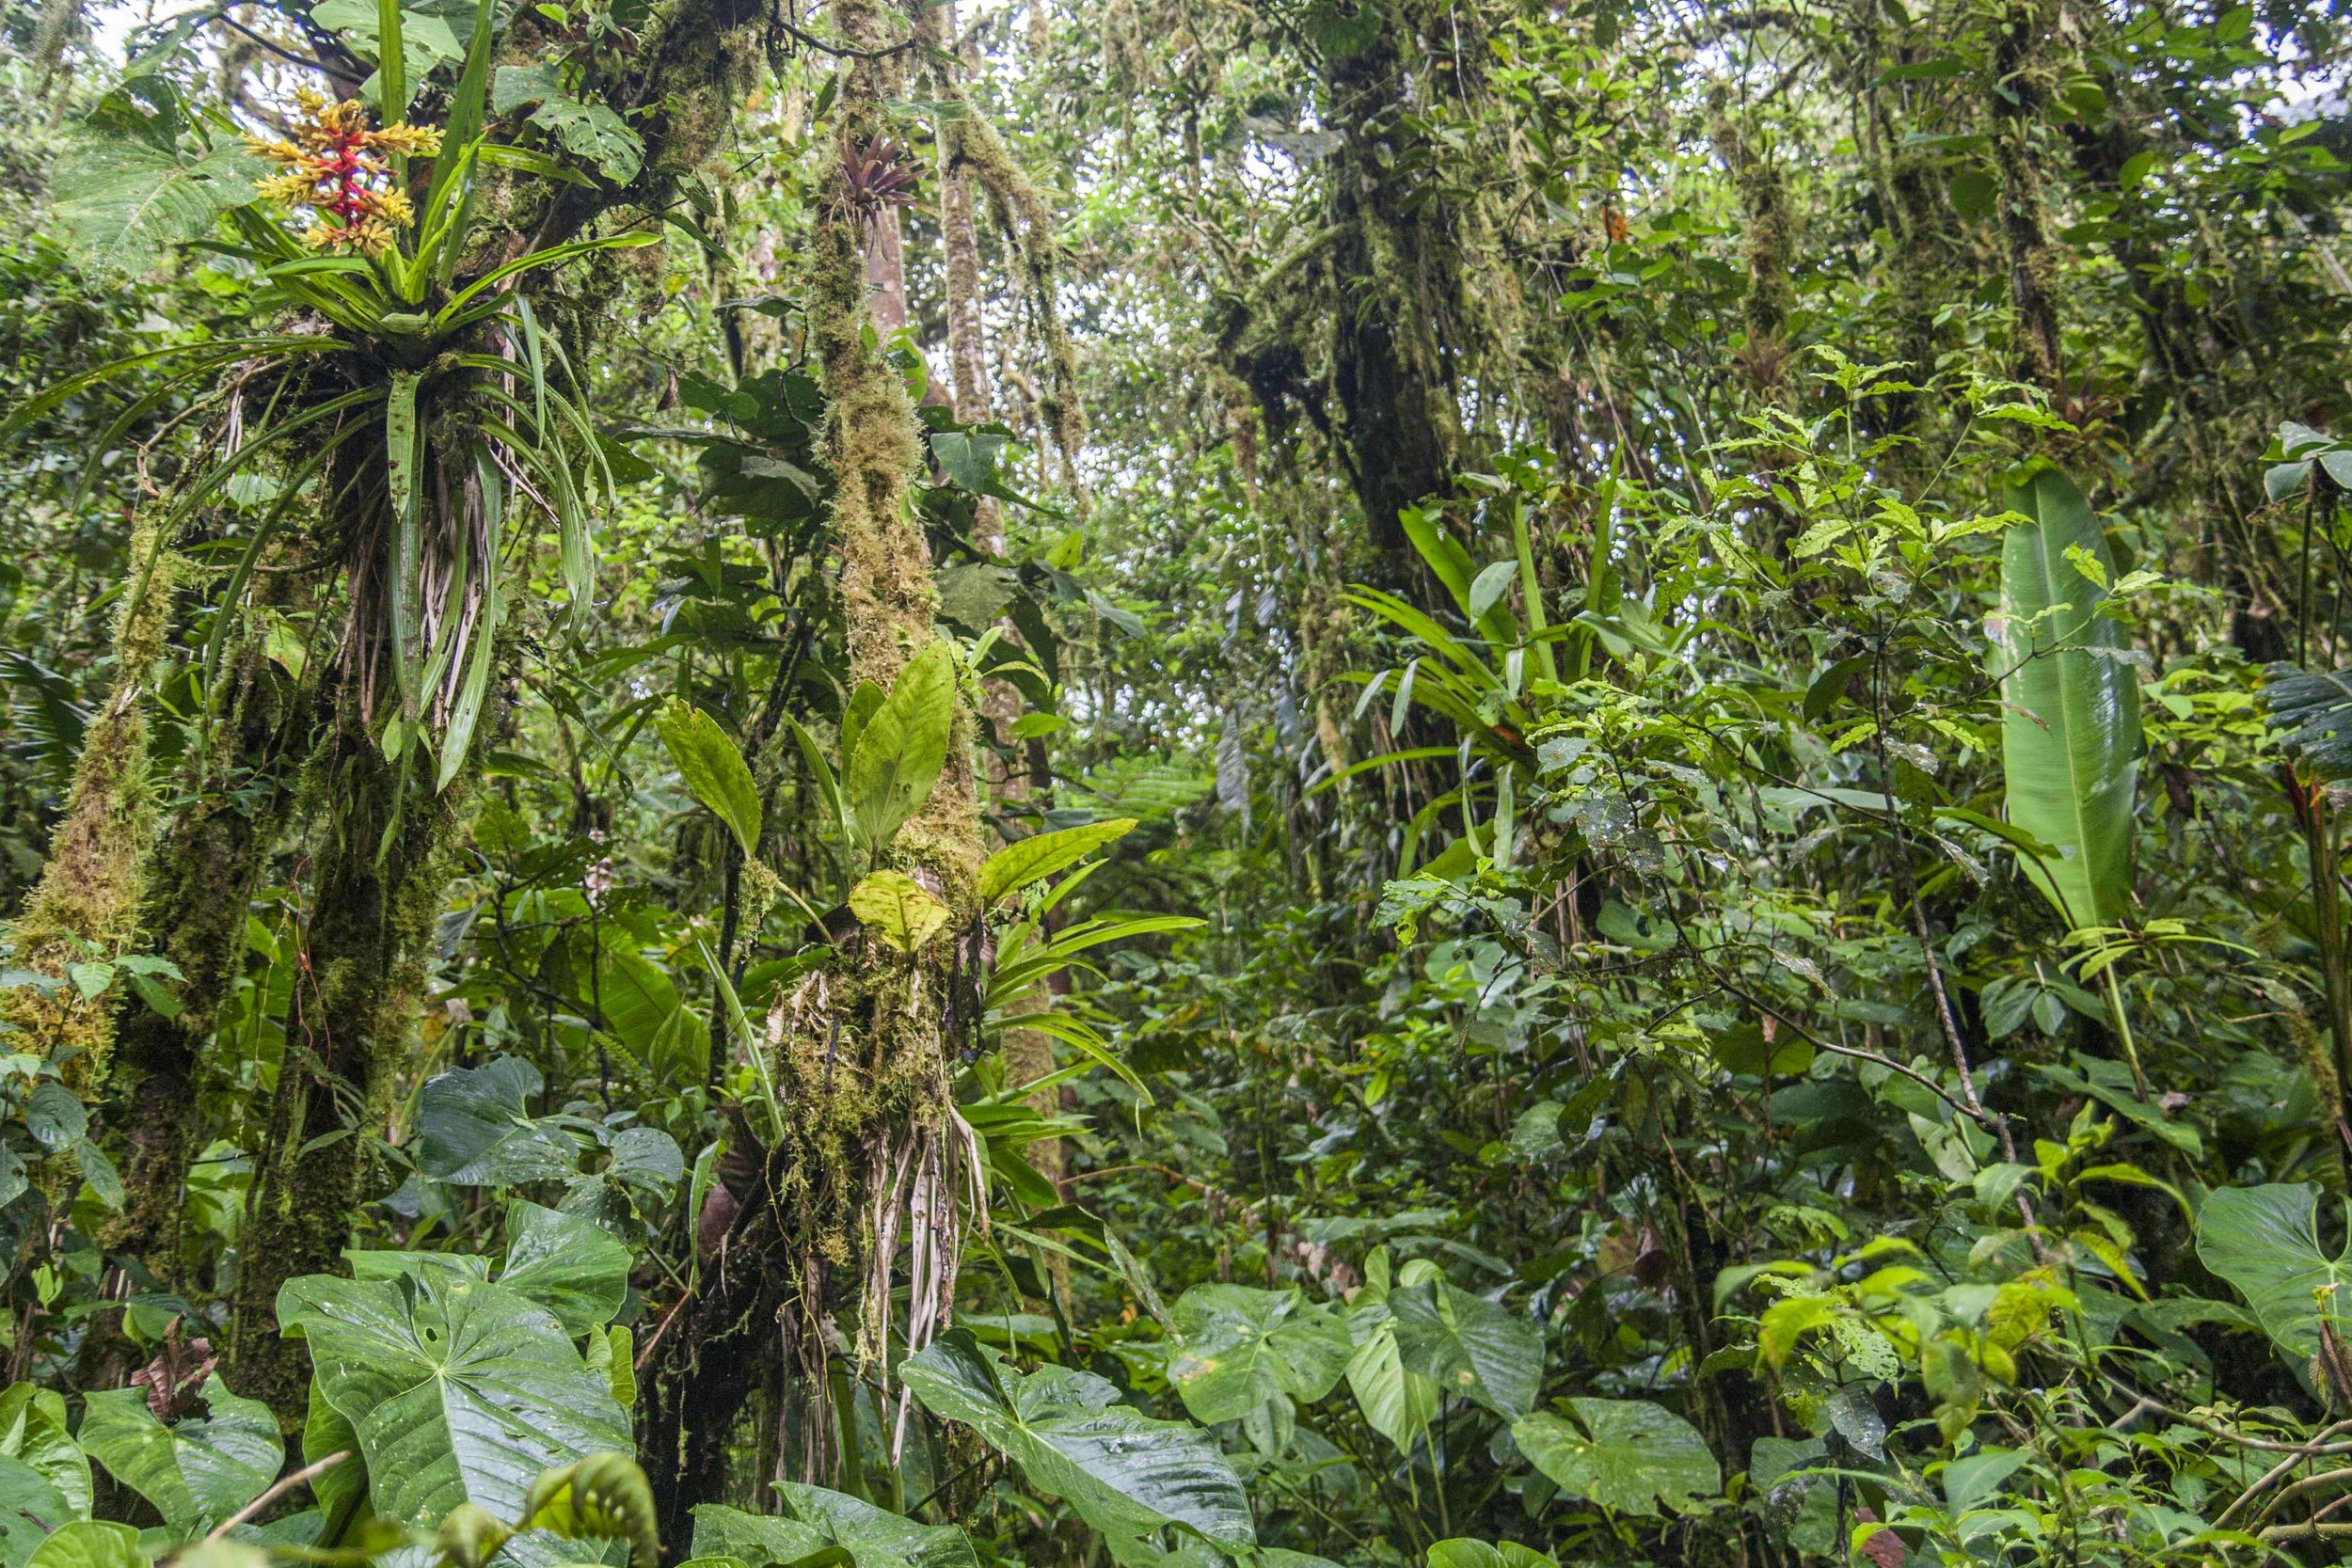 "Primary (never cut) cloud forest at Los Cedros, northwest Ecuador. It's pretty close to ""pristine,"" but given the forest's reliance on mist and rain, climate change will surely change that. Psychologically, when and how will that start to matter?"